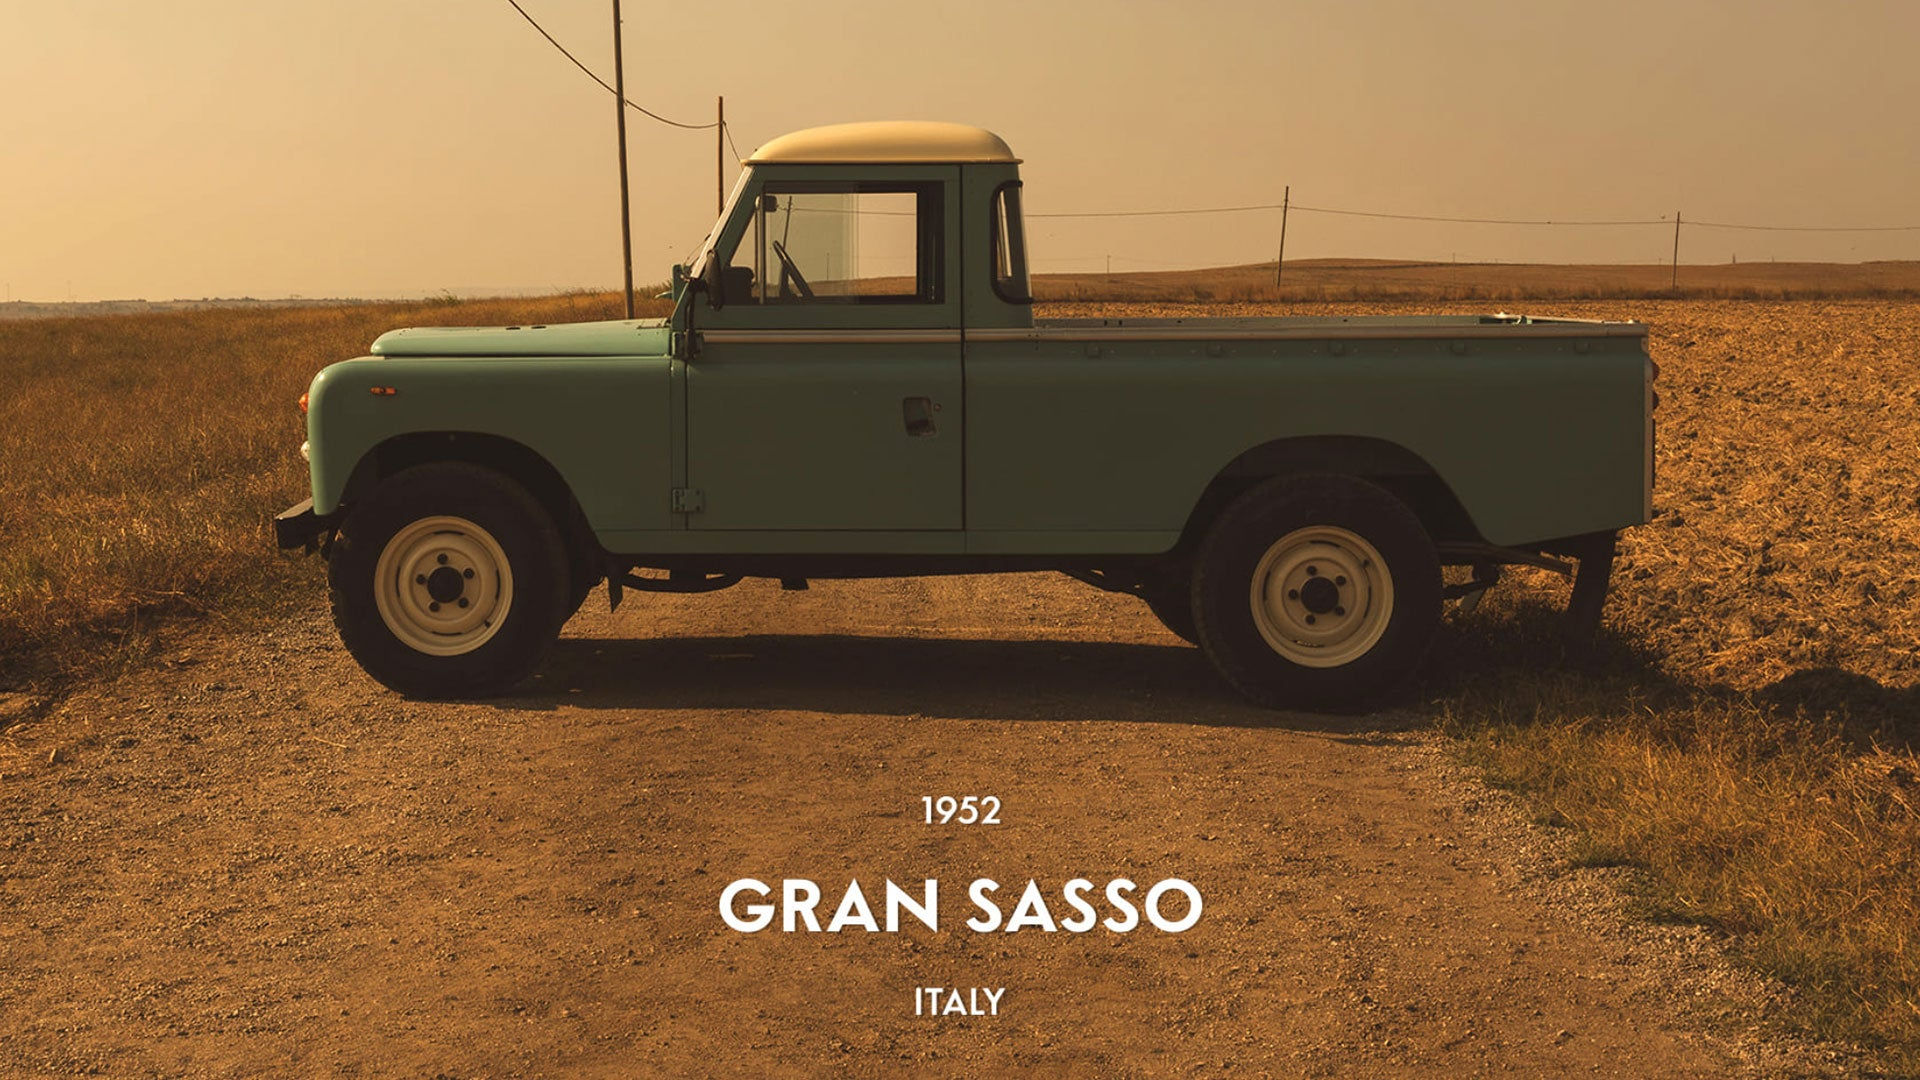 Gran Sasso - Made in Italy